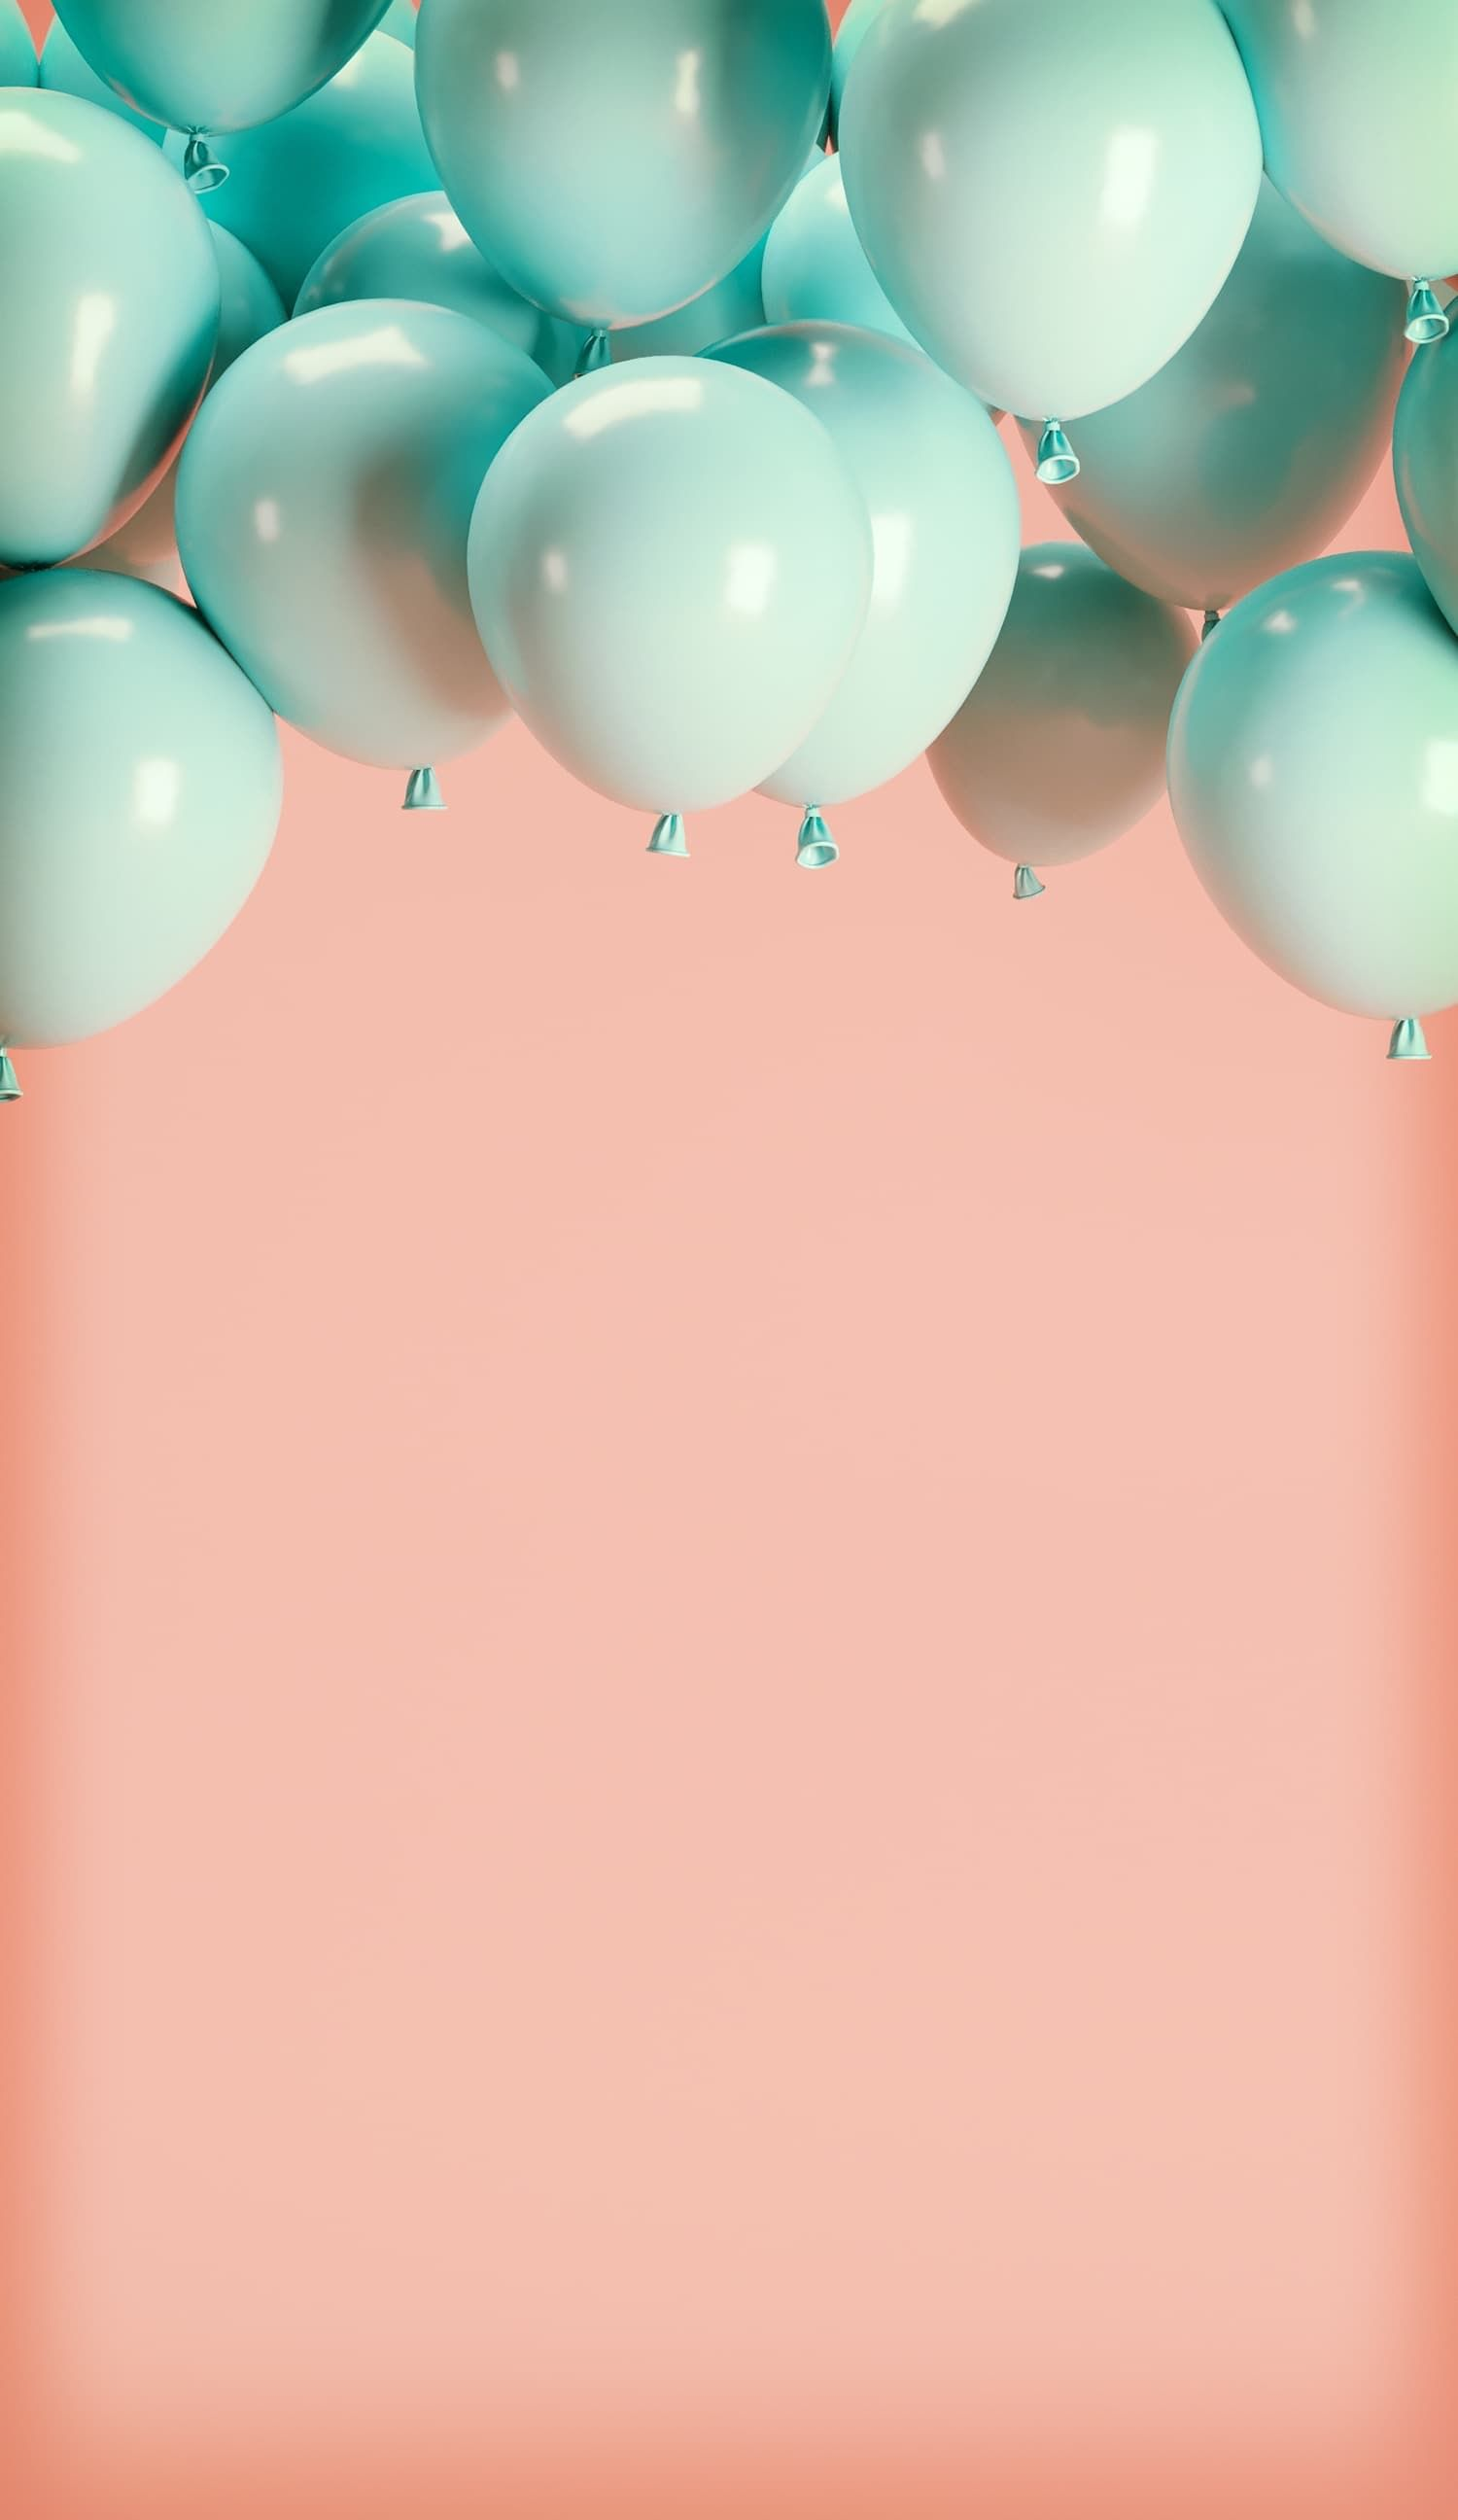 Unduh 88 Background Tumblr Birthday Paling Keren